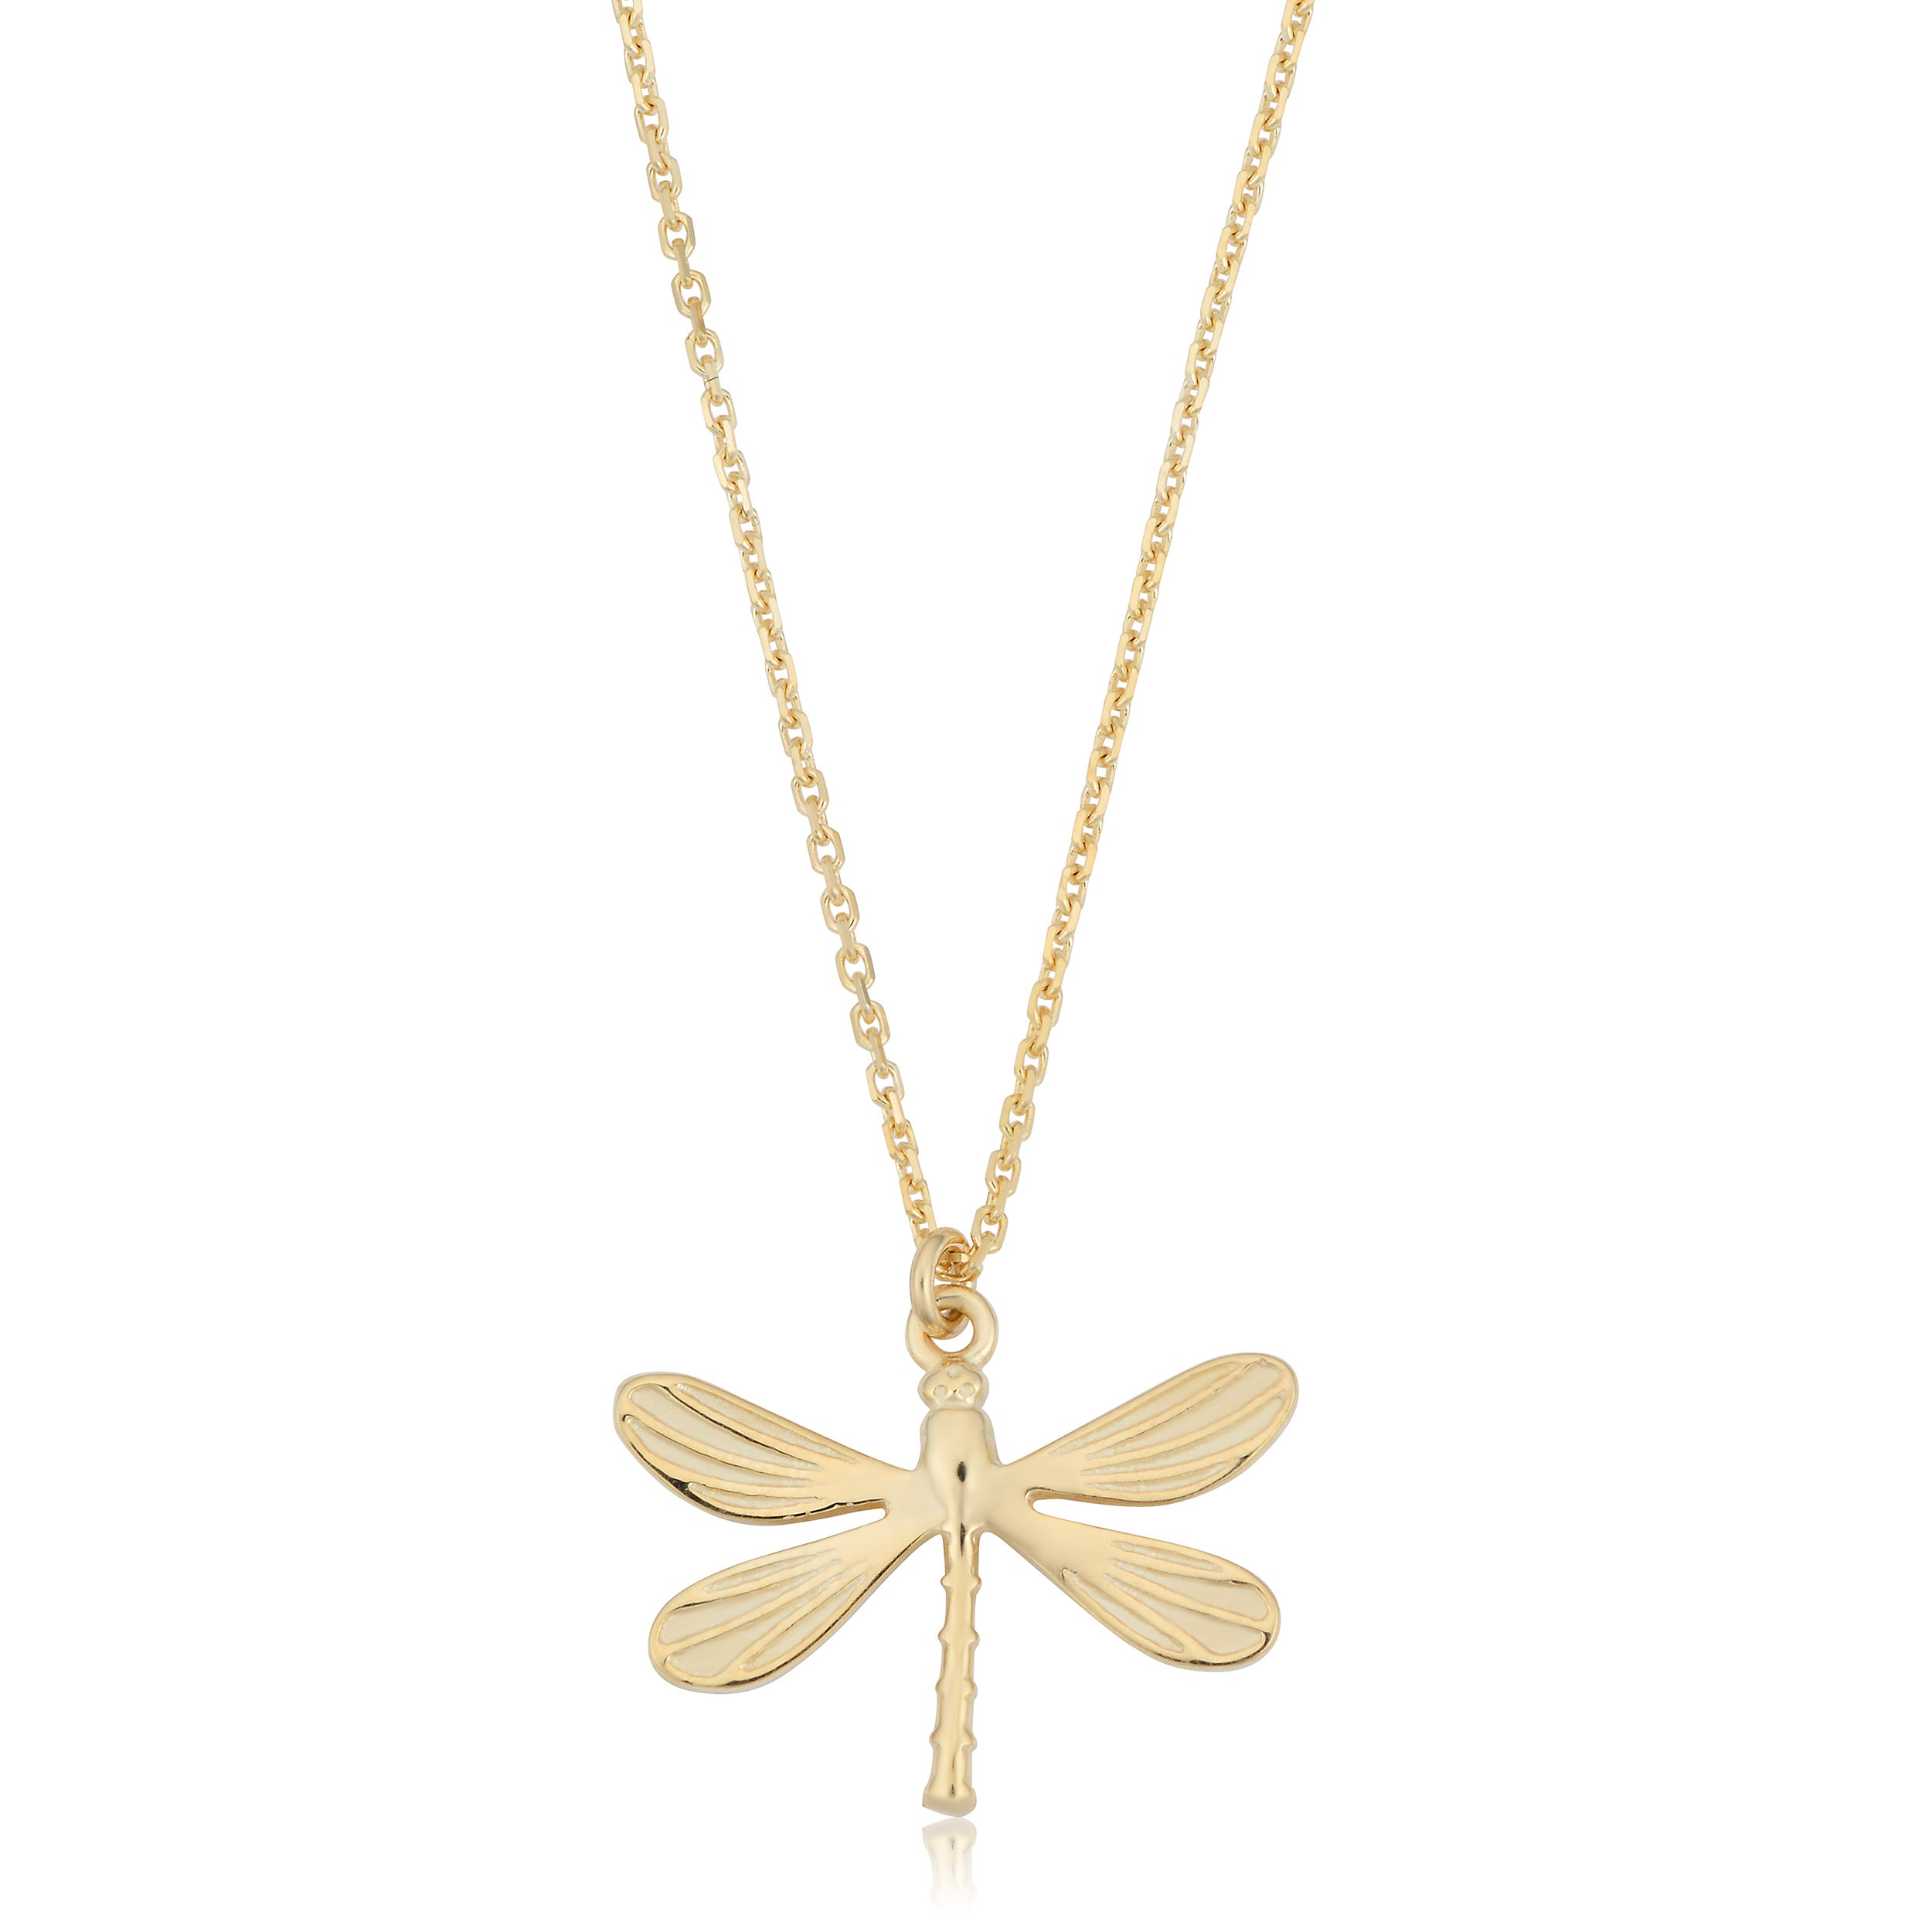 ficklesticks long ladyz shop dragonfly pendant crazy necklace